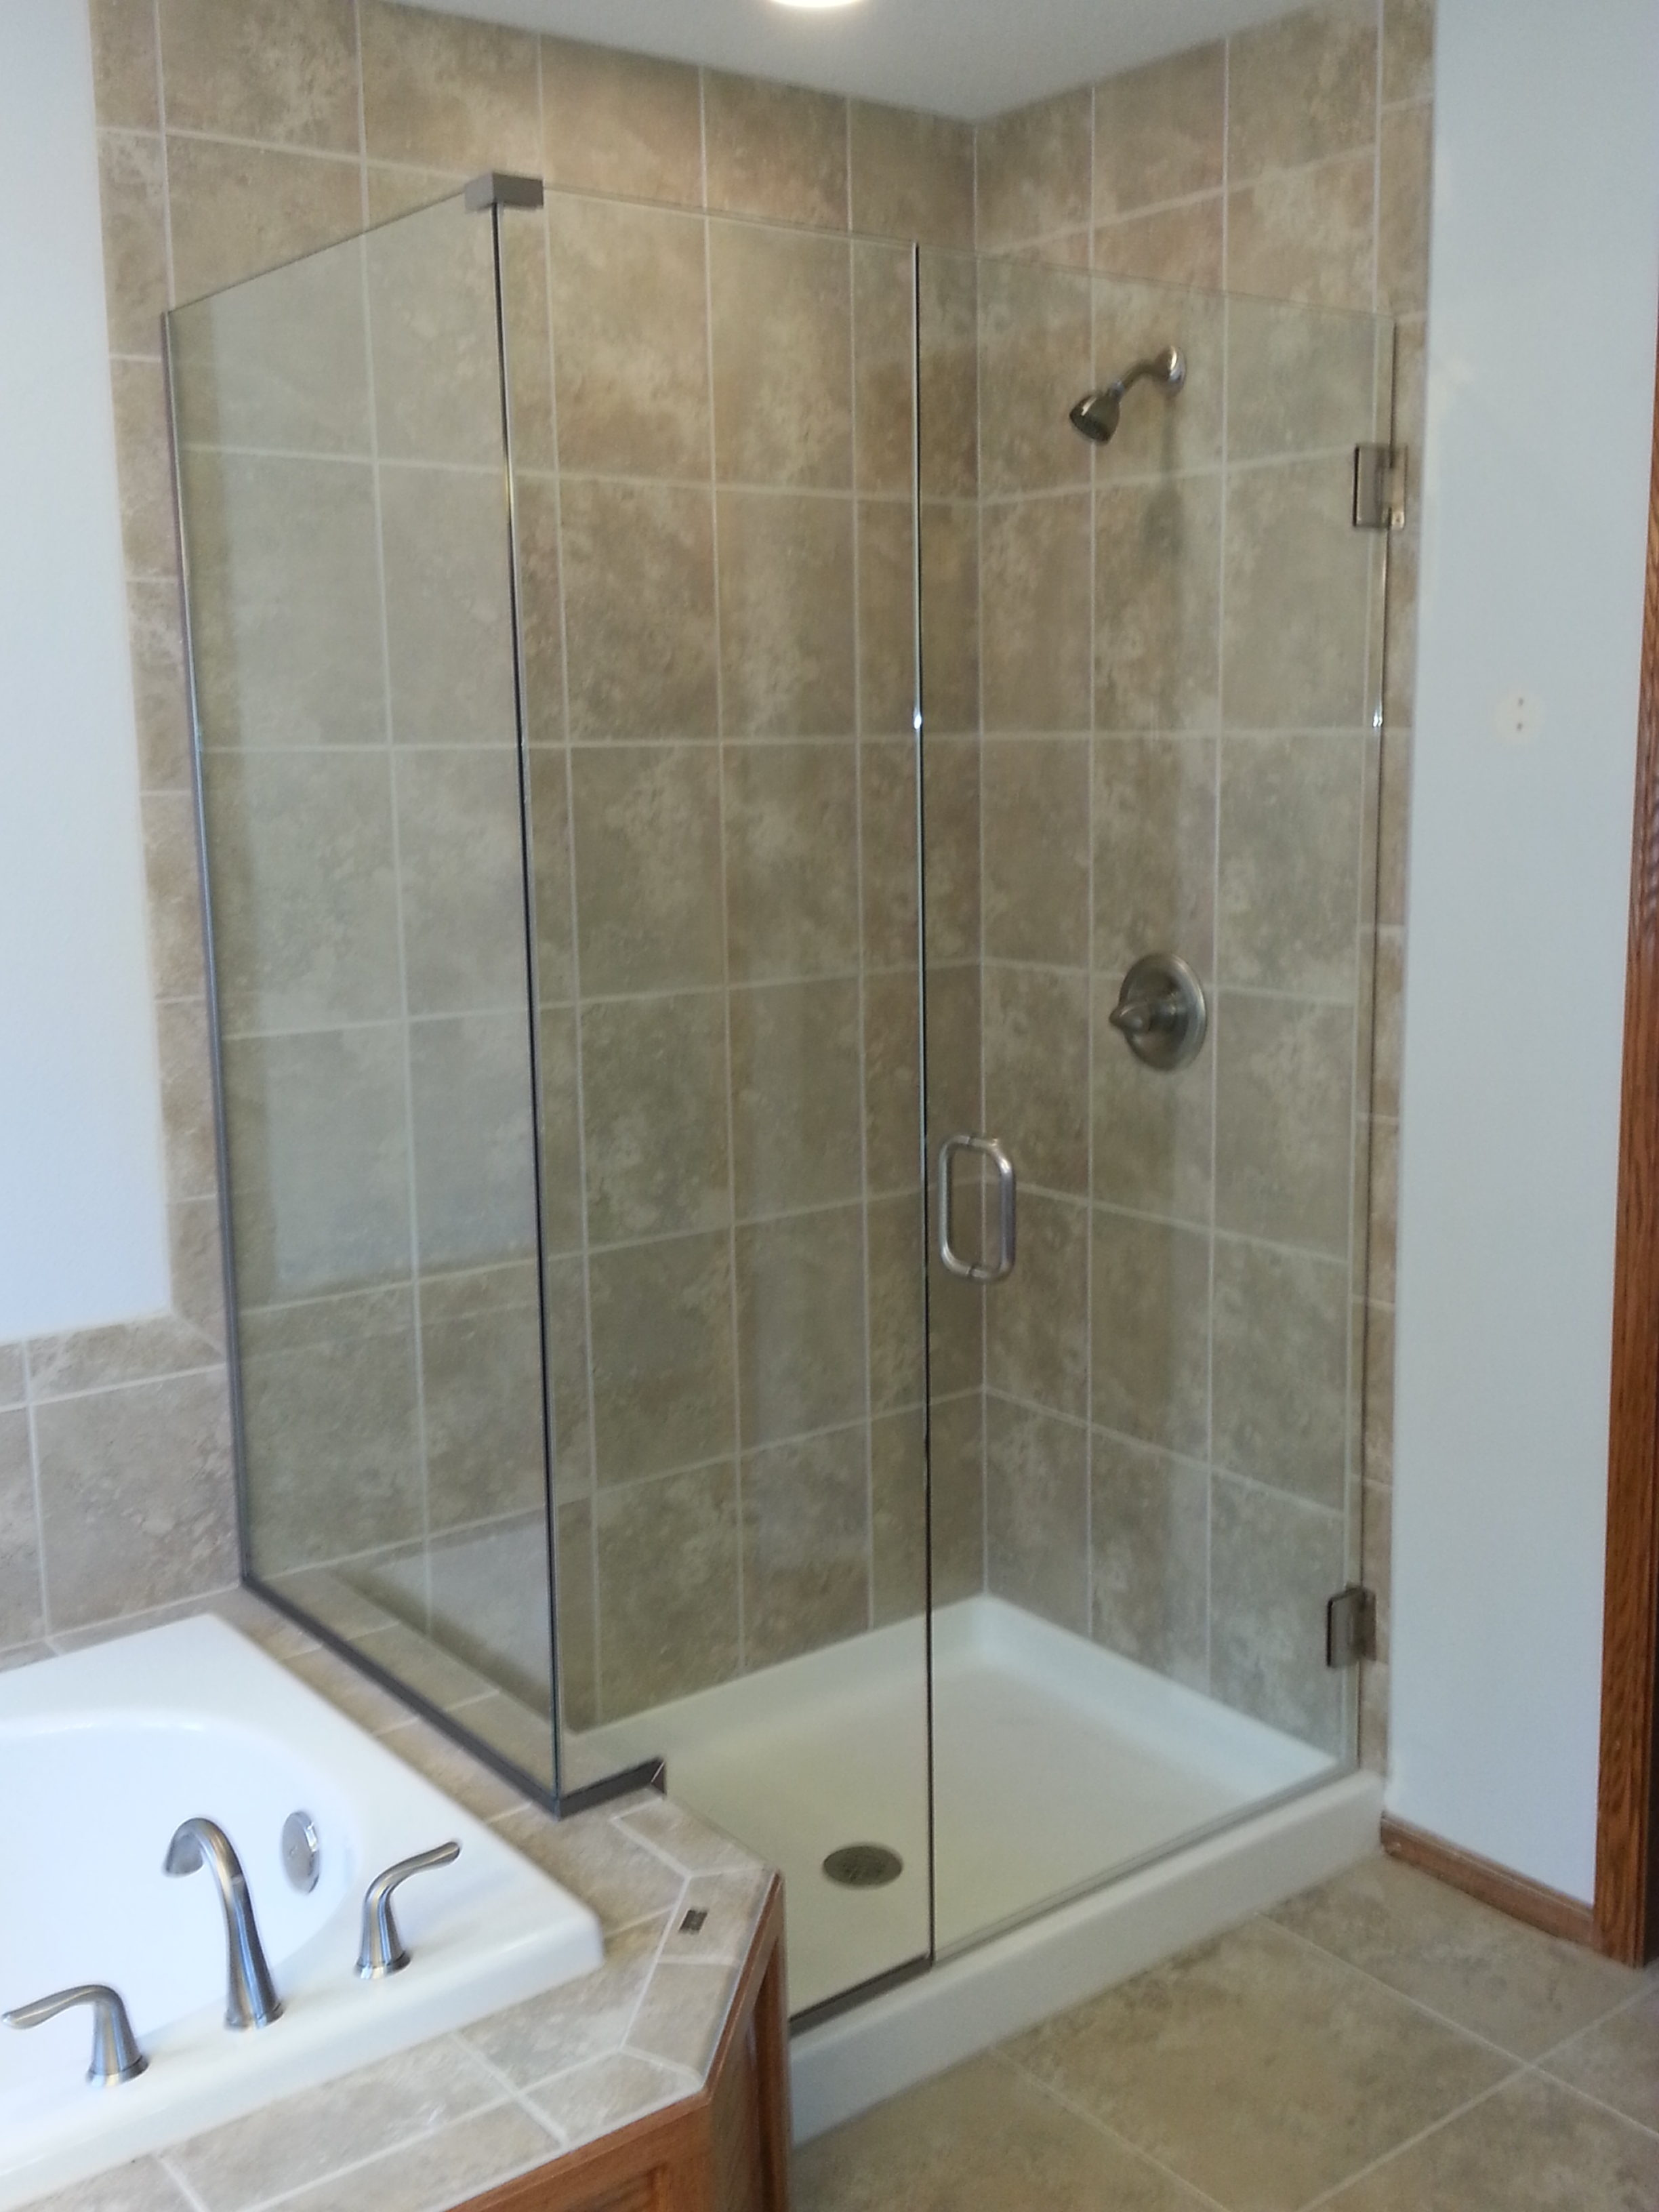 Frameless door and notched inline panel, with a return panel. The panels are installed using channel. Clear glass with brushed nickel hardware, and a C-Pull handle.